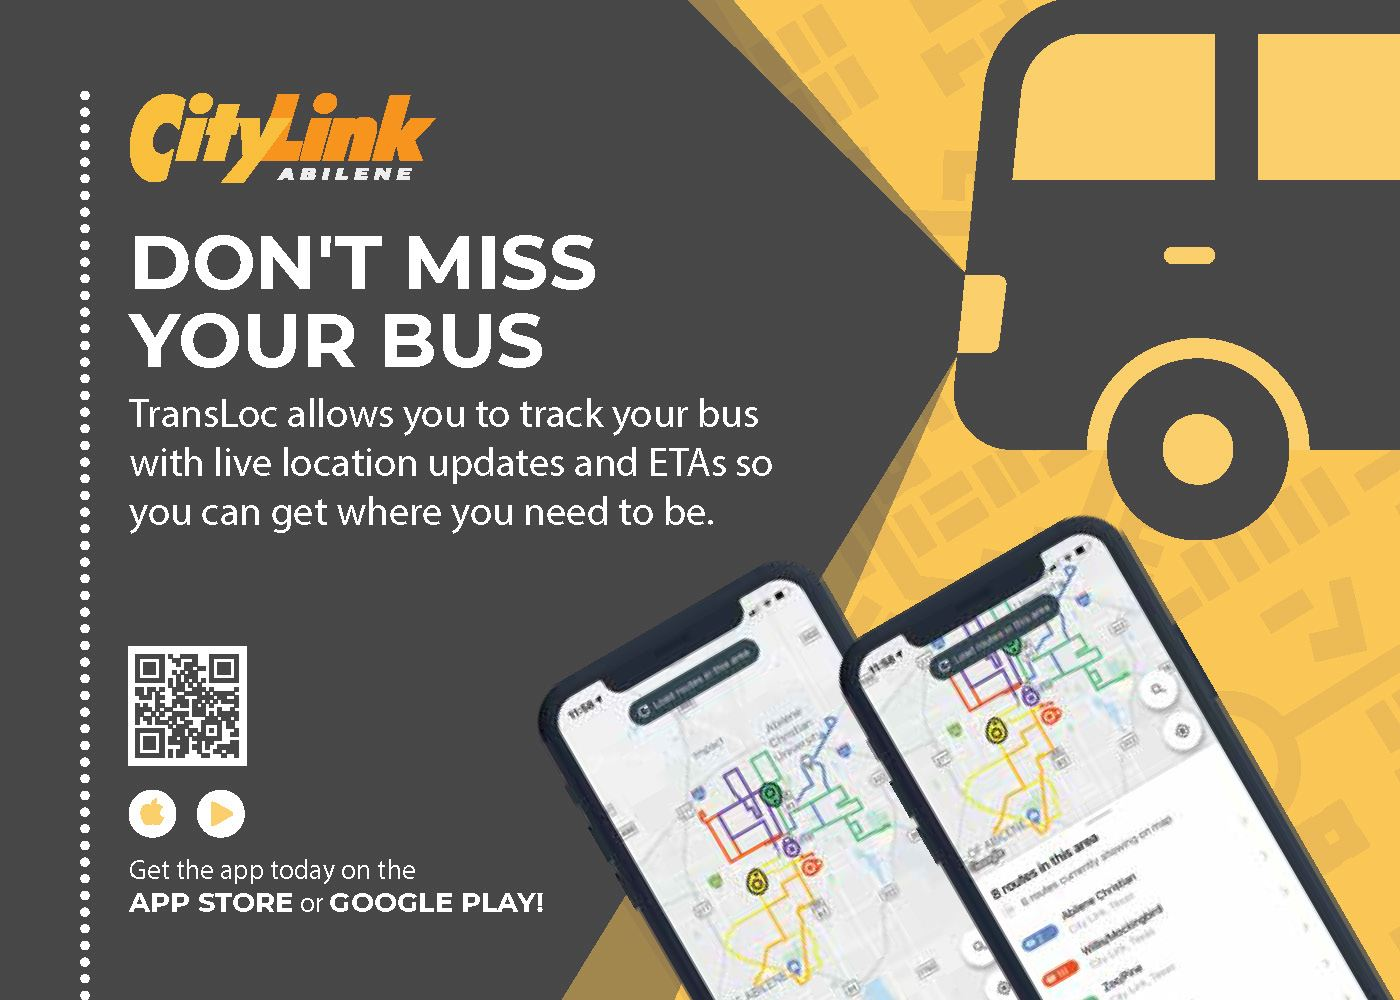 CityLink TransLoc App - Download in the App Store or Google Play